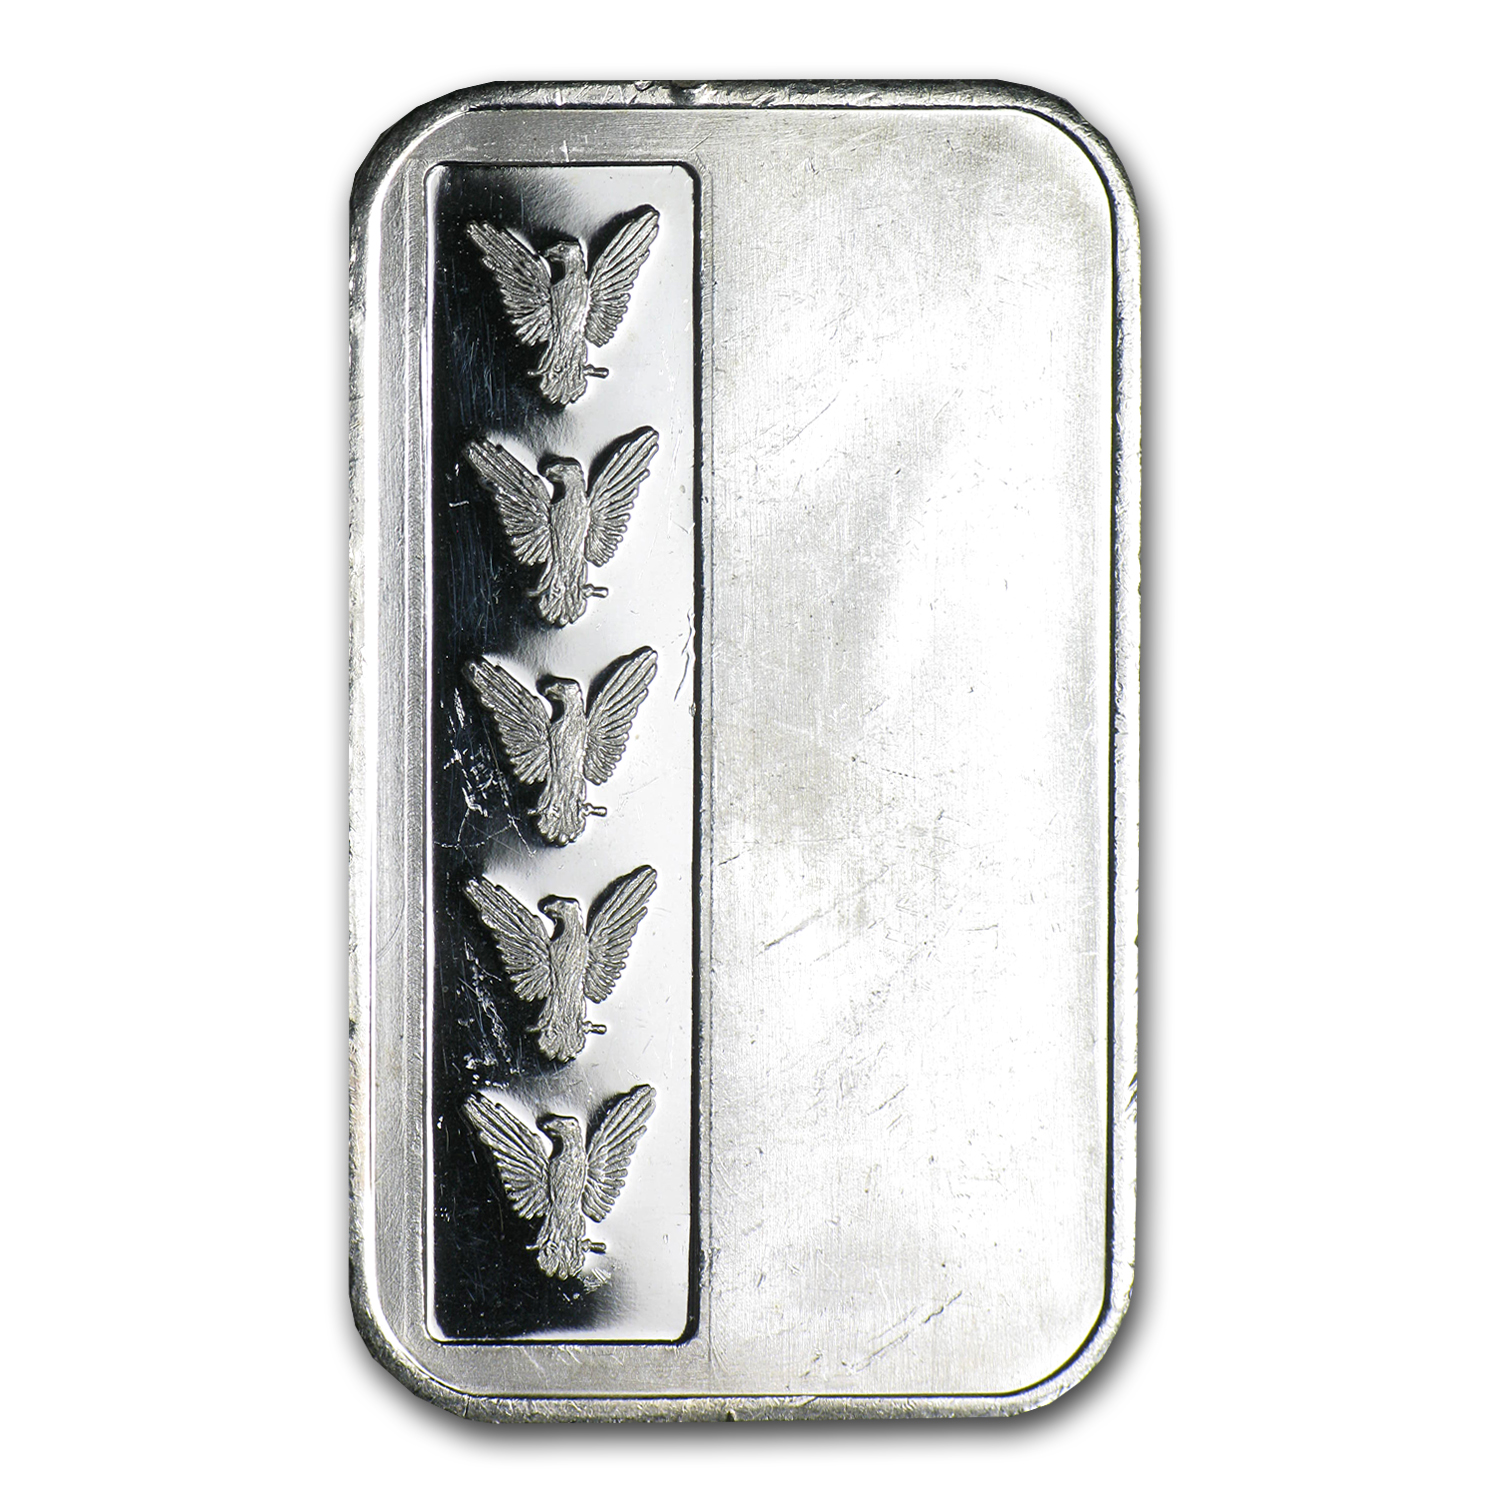 1/2 oz Silver Bars - Secondary Market